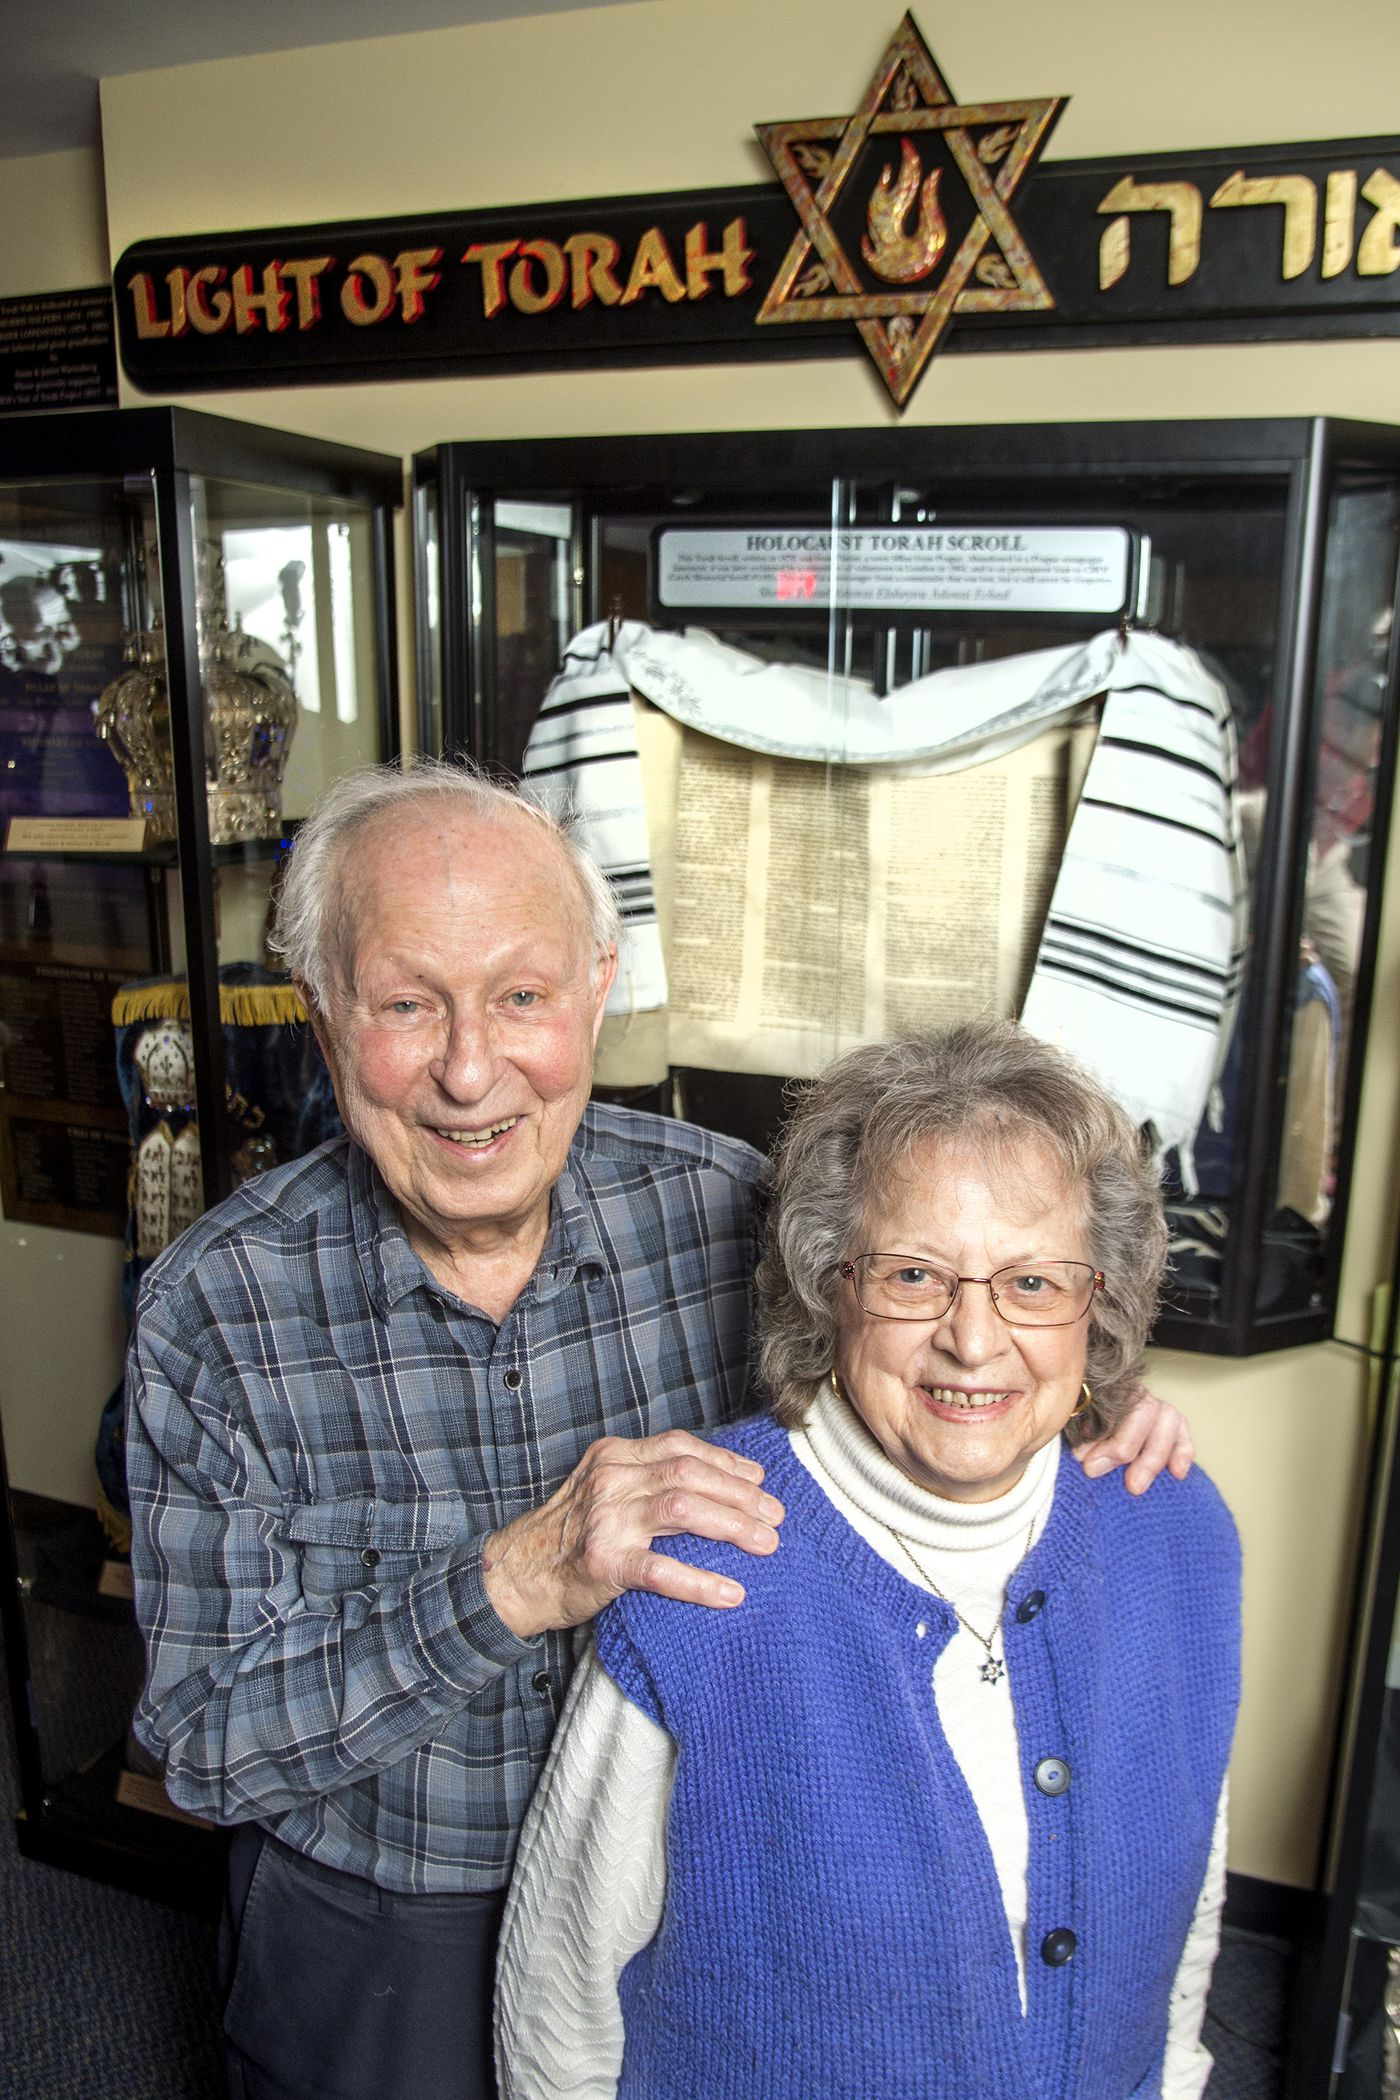 Sid Moszer and wife Eva, 88, with a display of torahs at Congregation Brothers of Israel in Newtown.